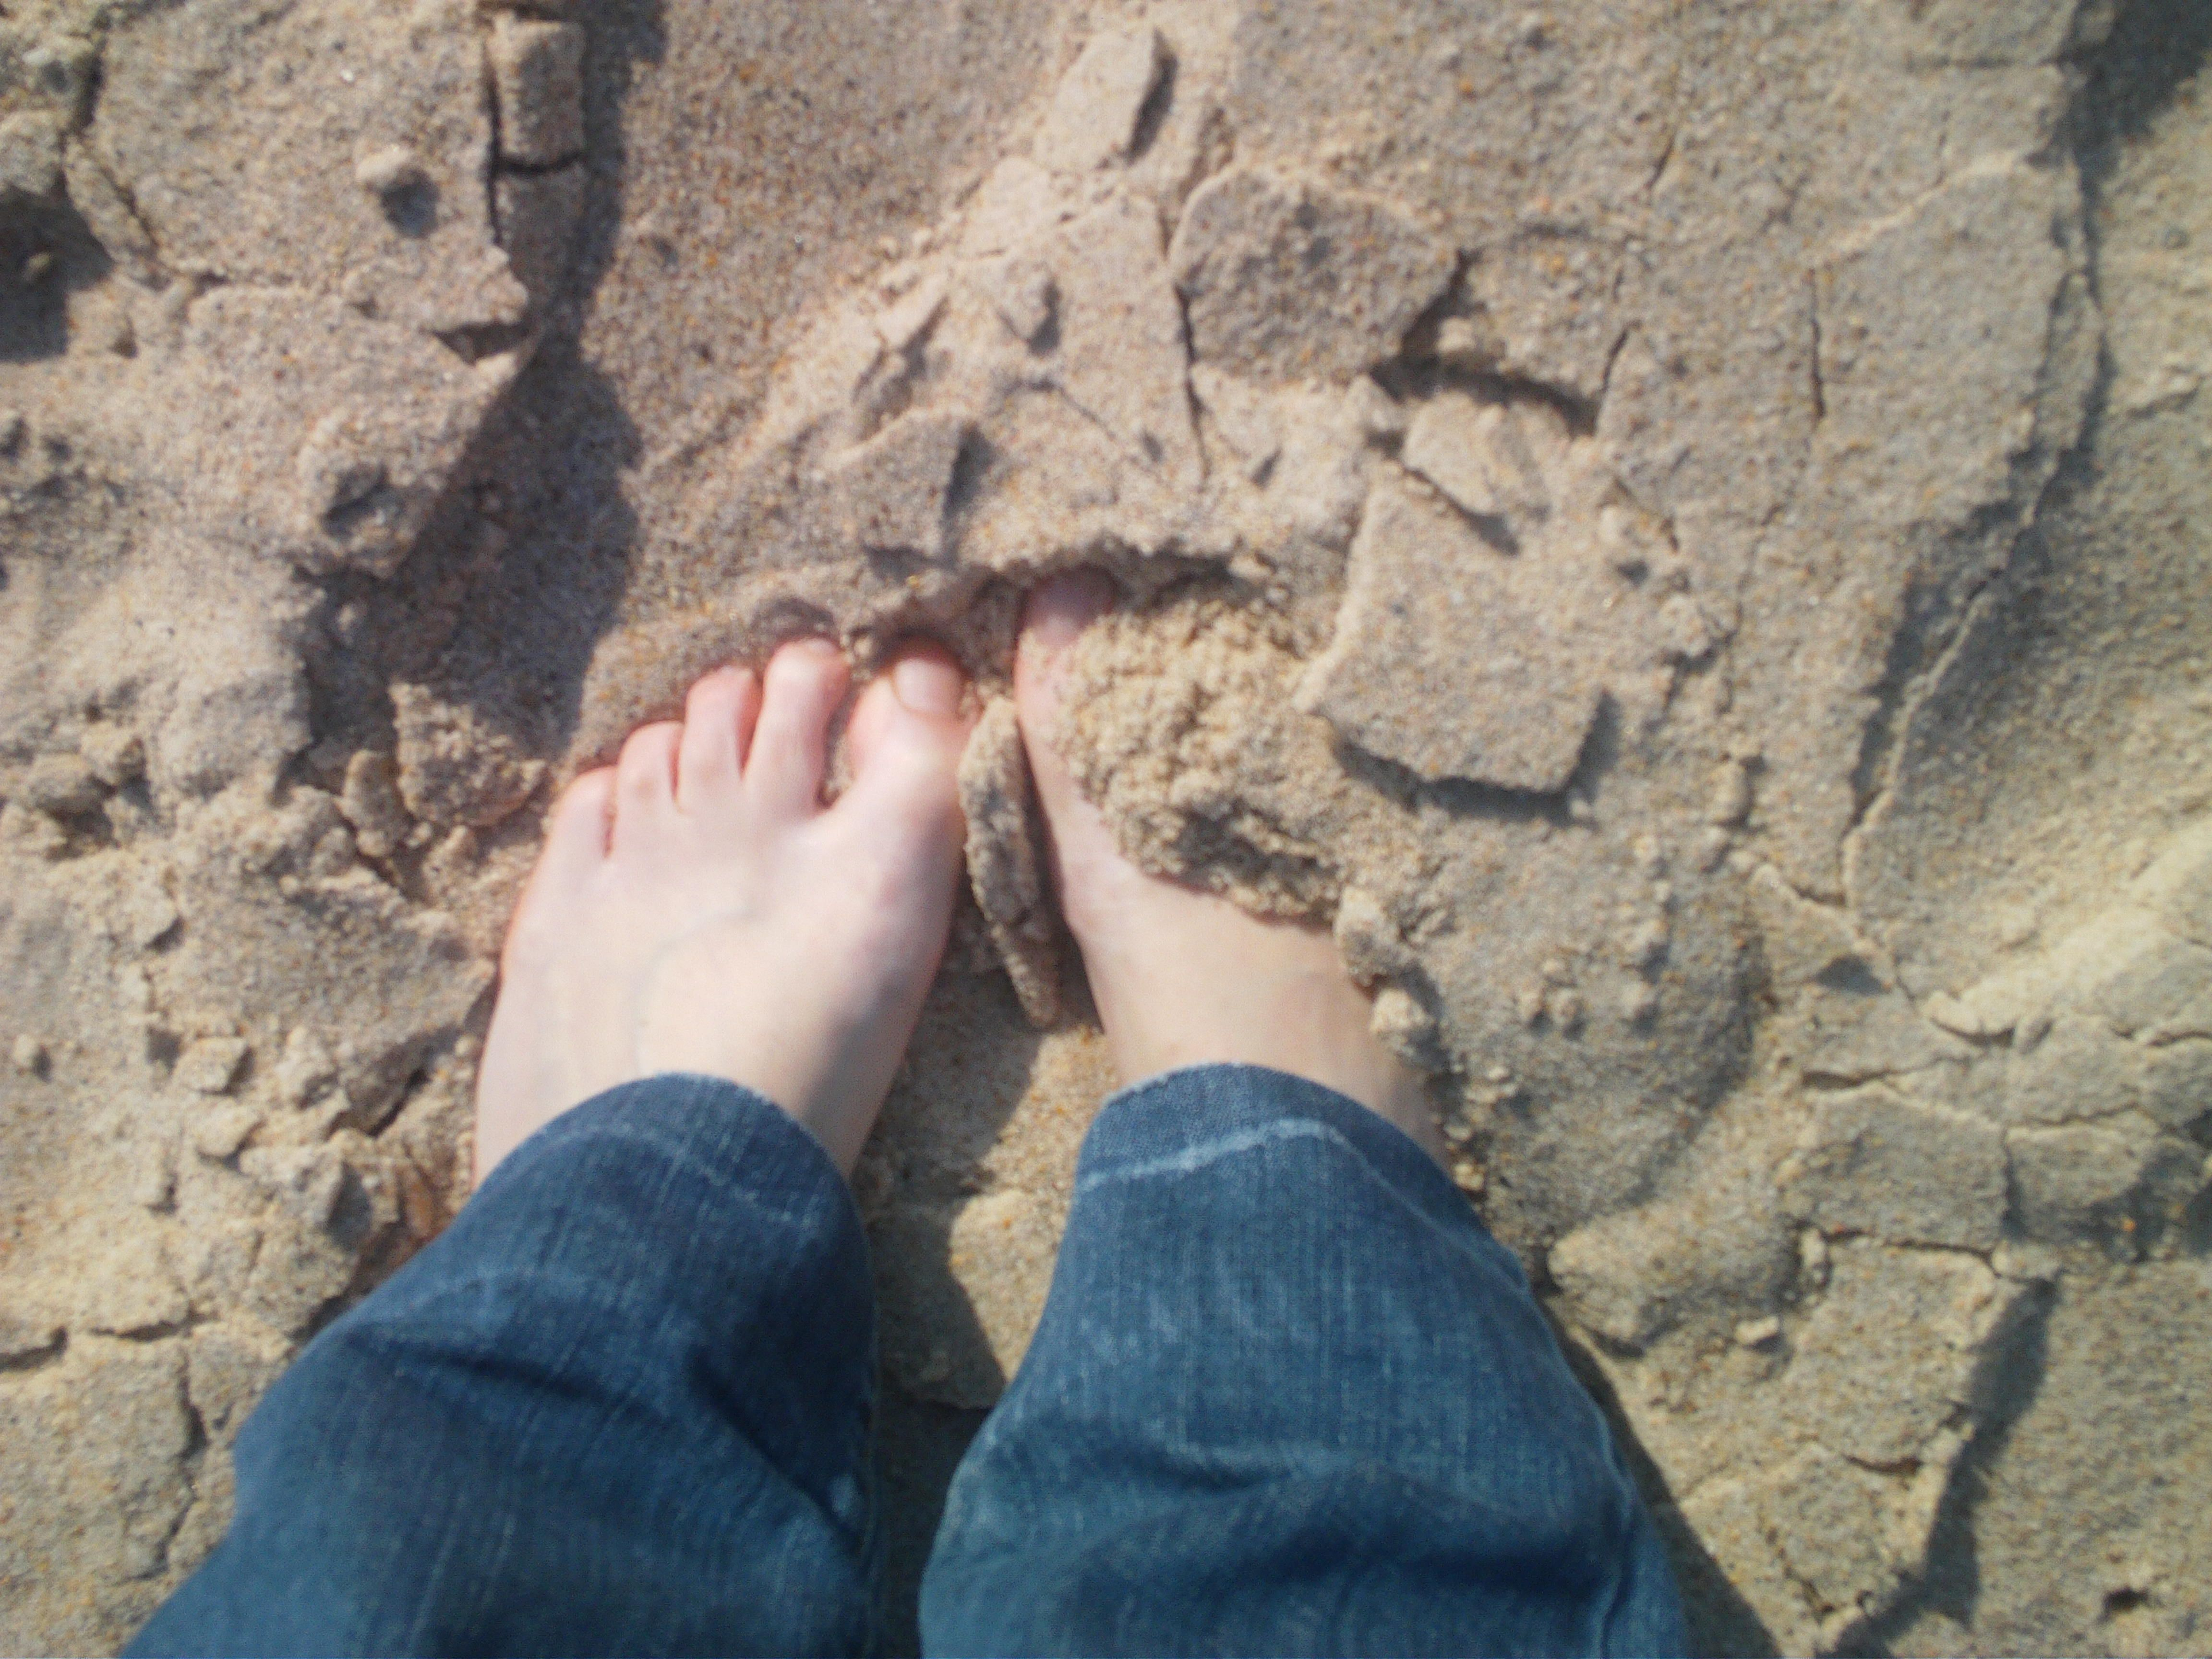 Sand at my feet